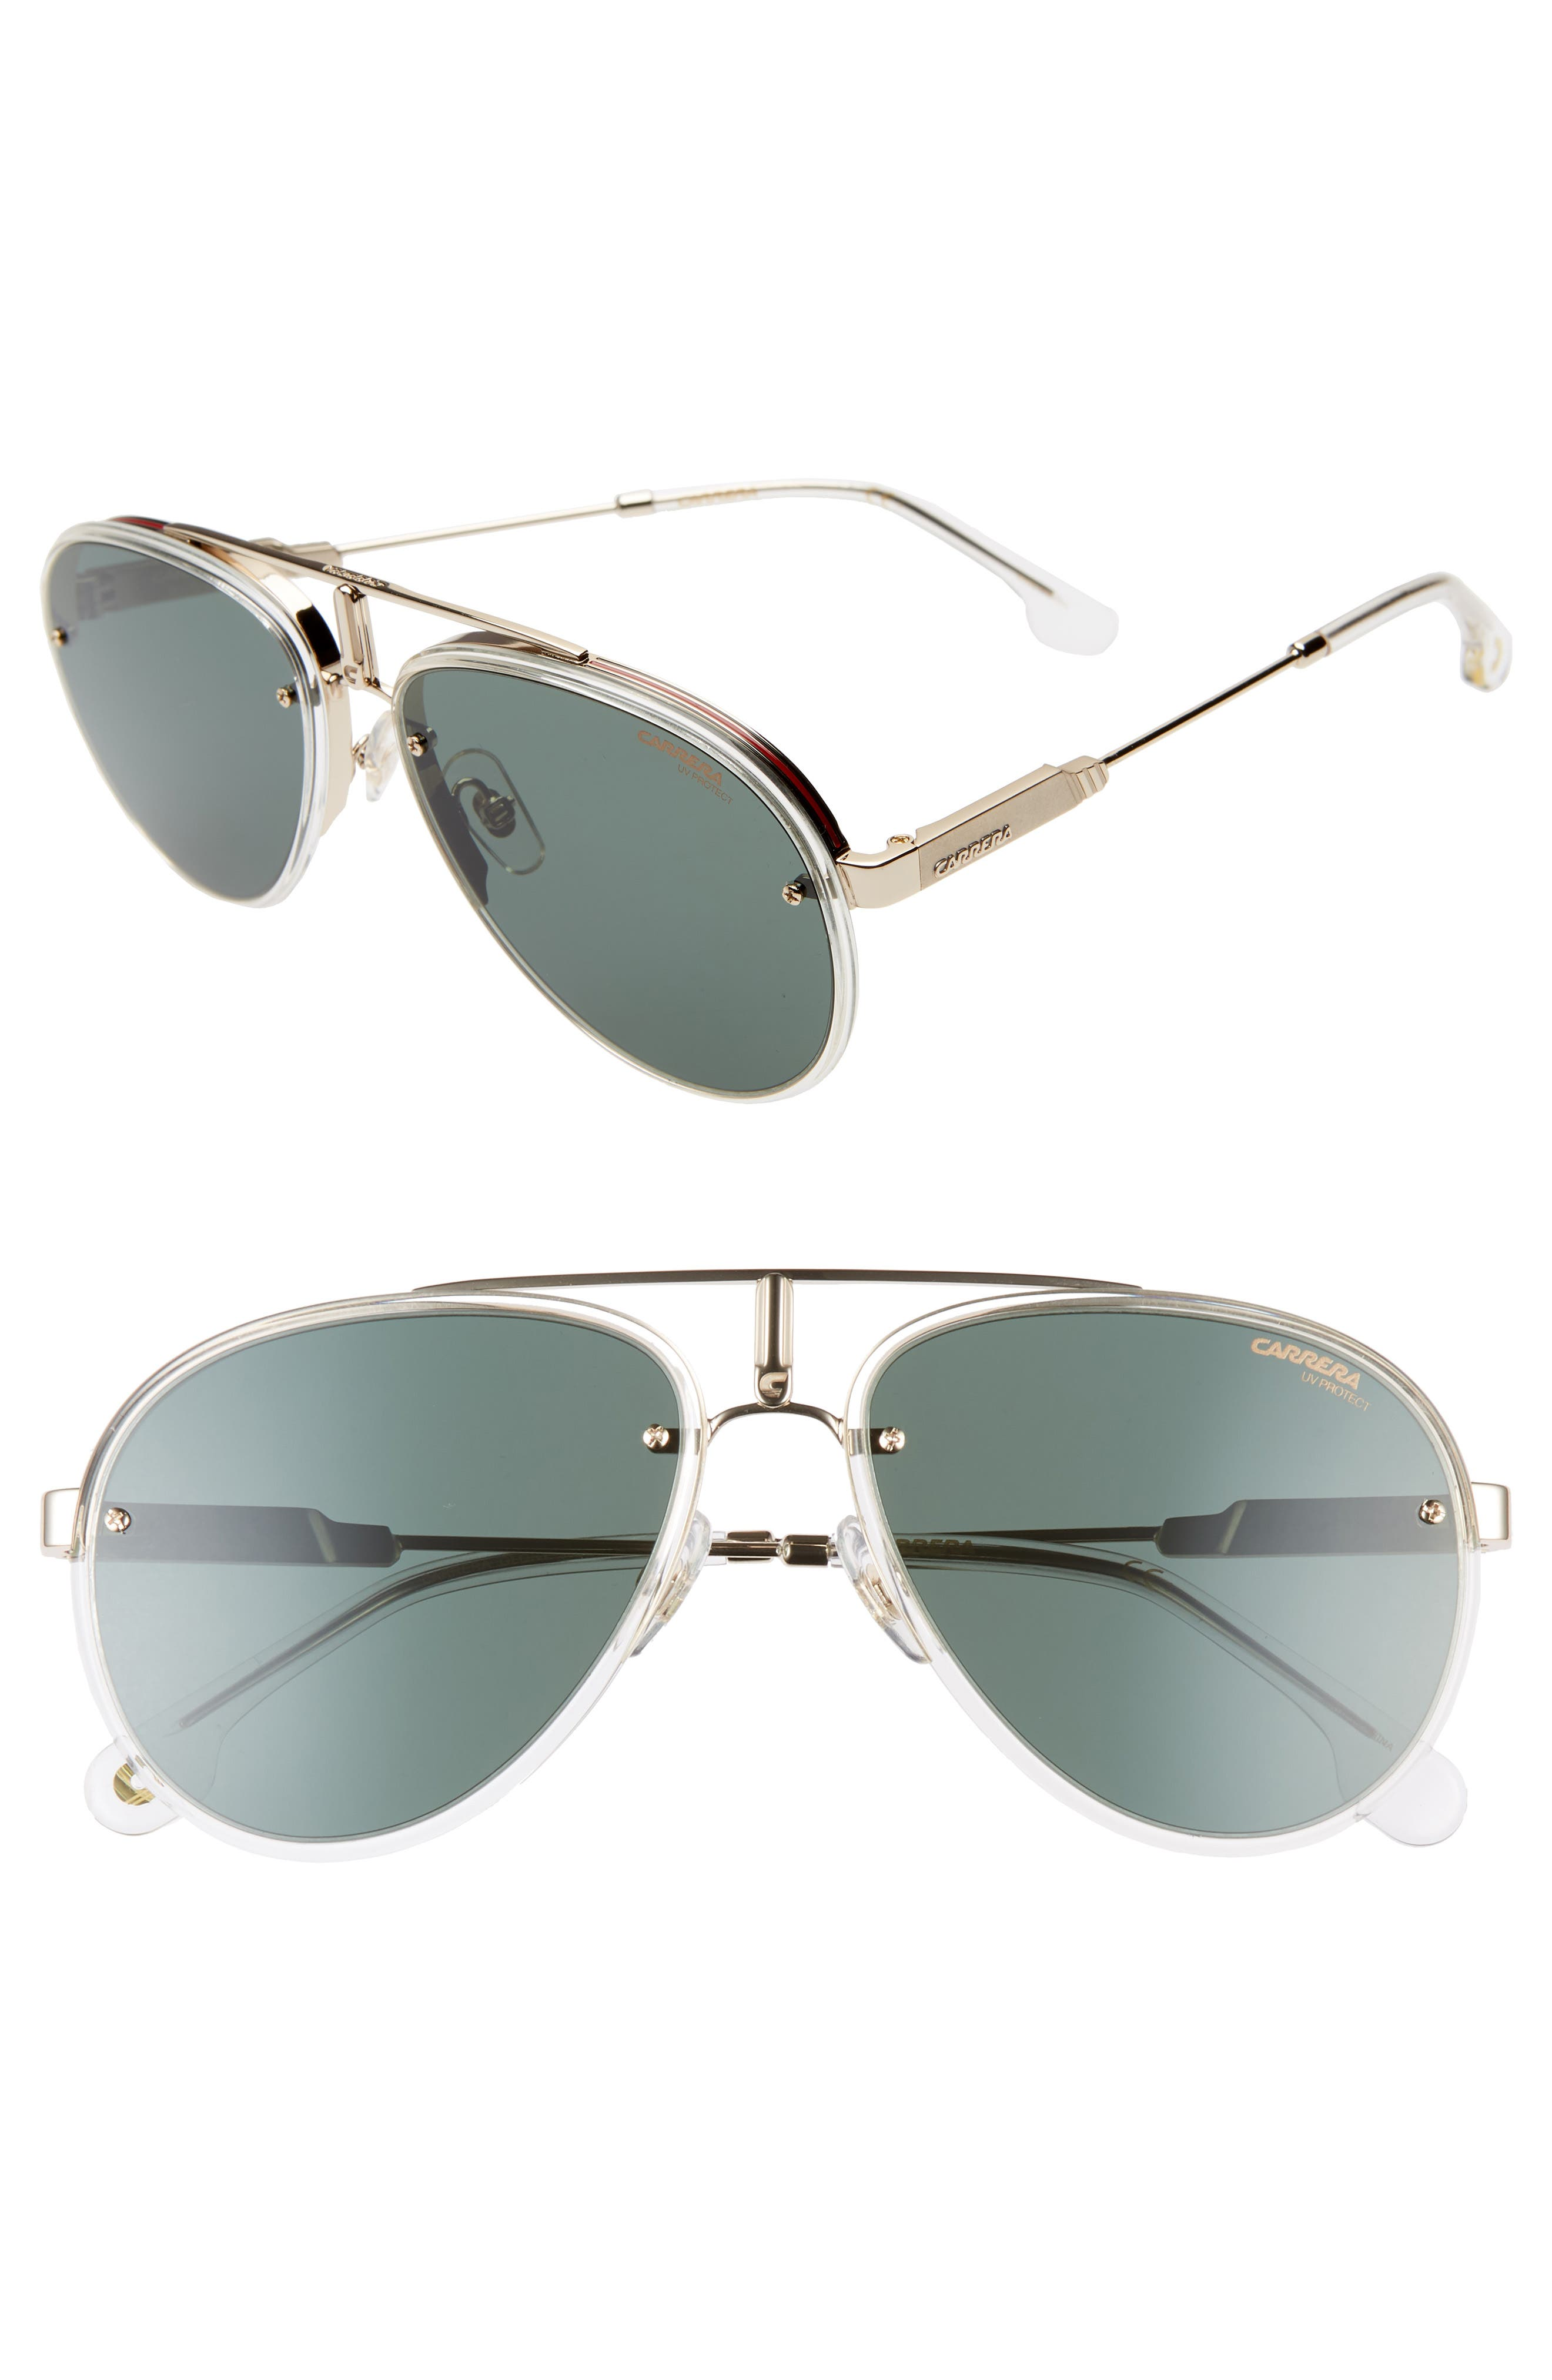 Carrera Glory 5m Aviator Sunglasses - Crystal